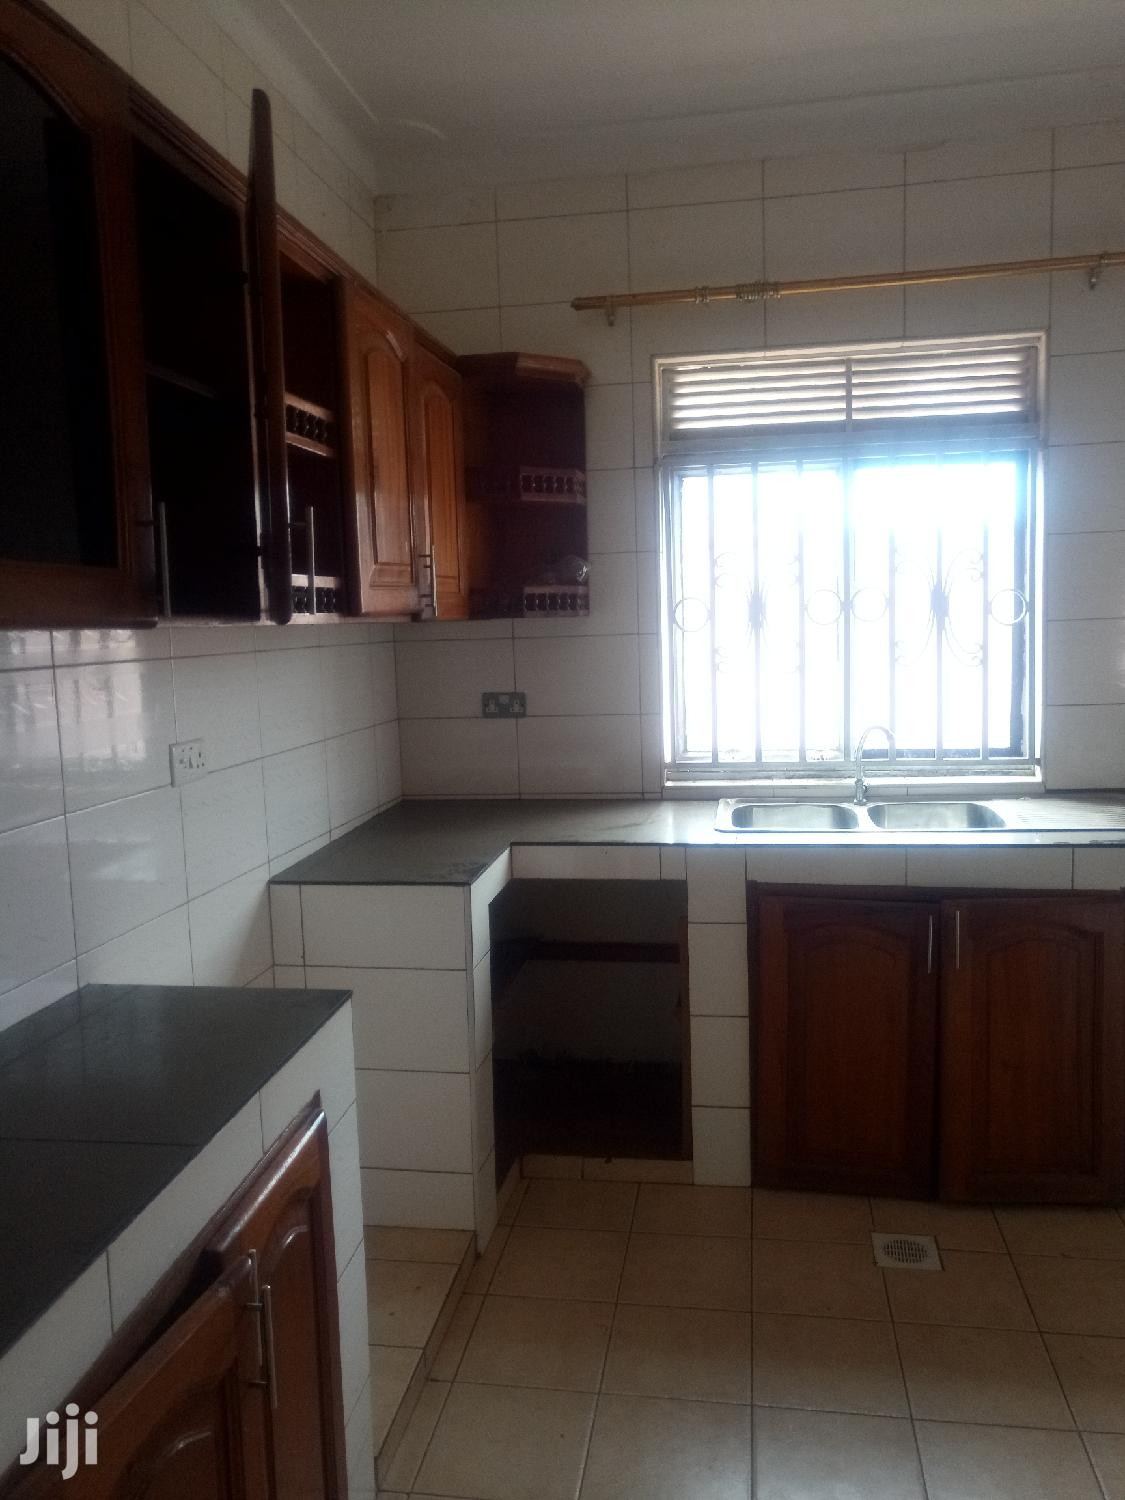 Kireka-Agenda Three Bedrooms Standalone House for Rent | Houses & Apartments For Rent for sale in Kampala, Central Region, Uganda